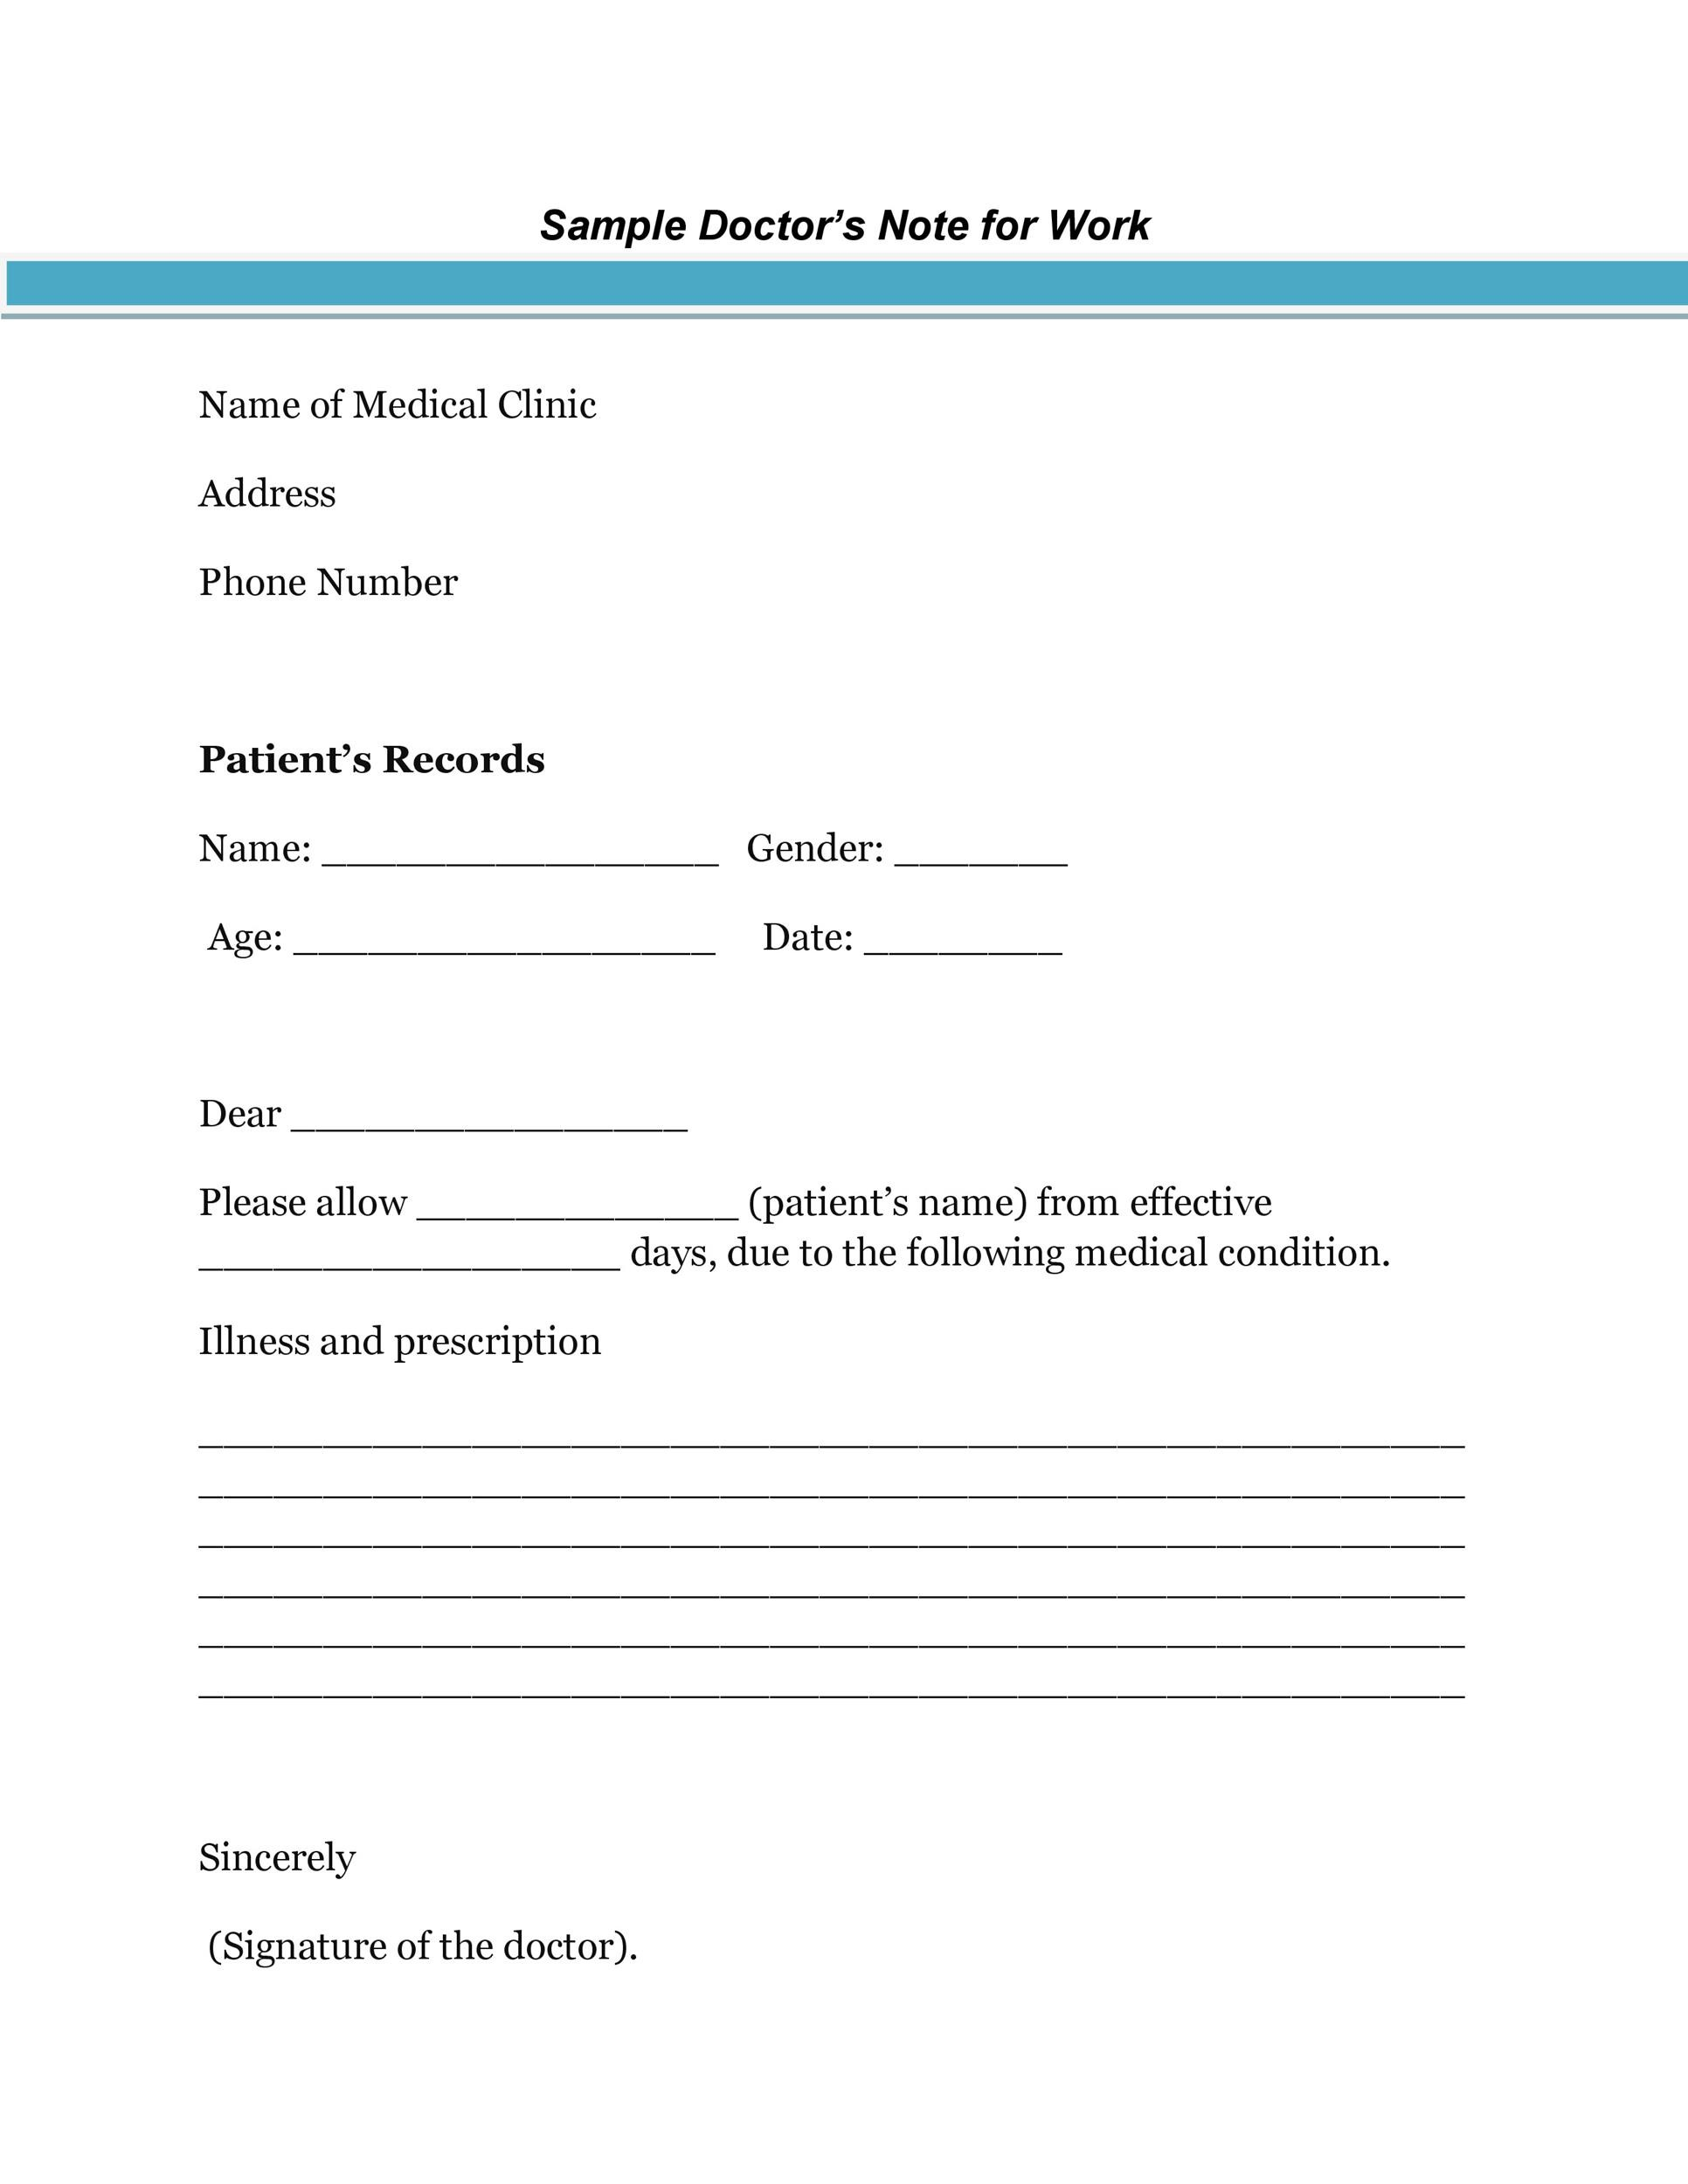 25 free doctor note excuse templates template lab for Fake dr note template free